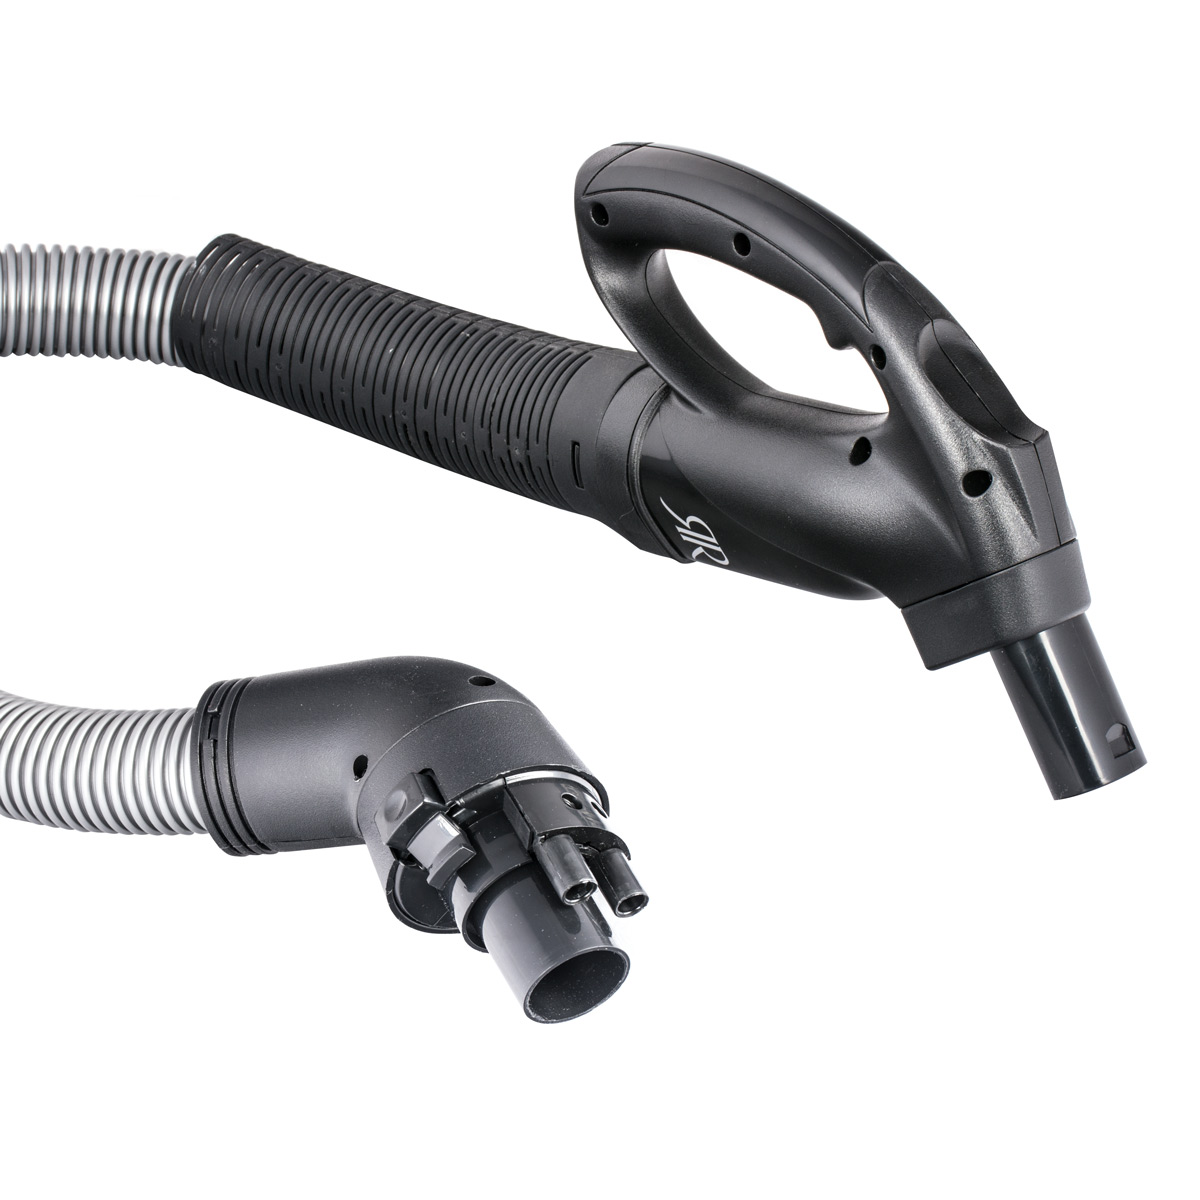 Hose Assembly For Moonlight Starbright Moon.2 Star.1